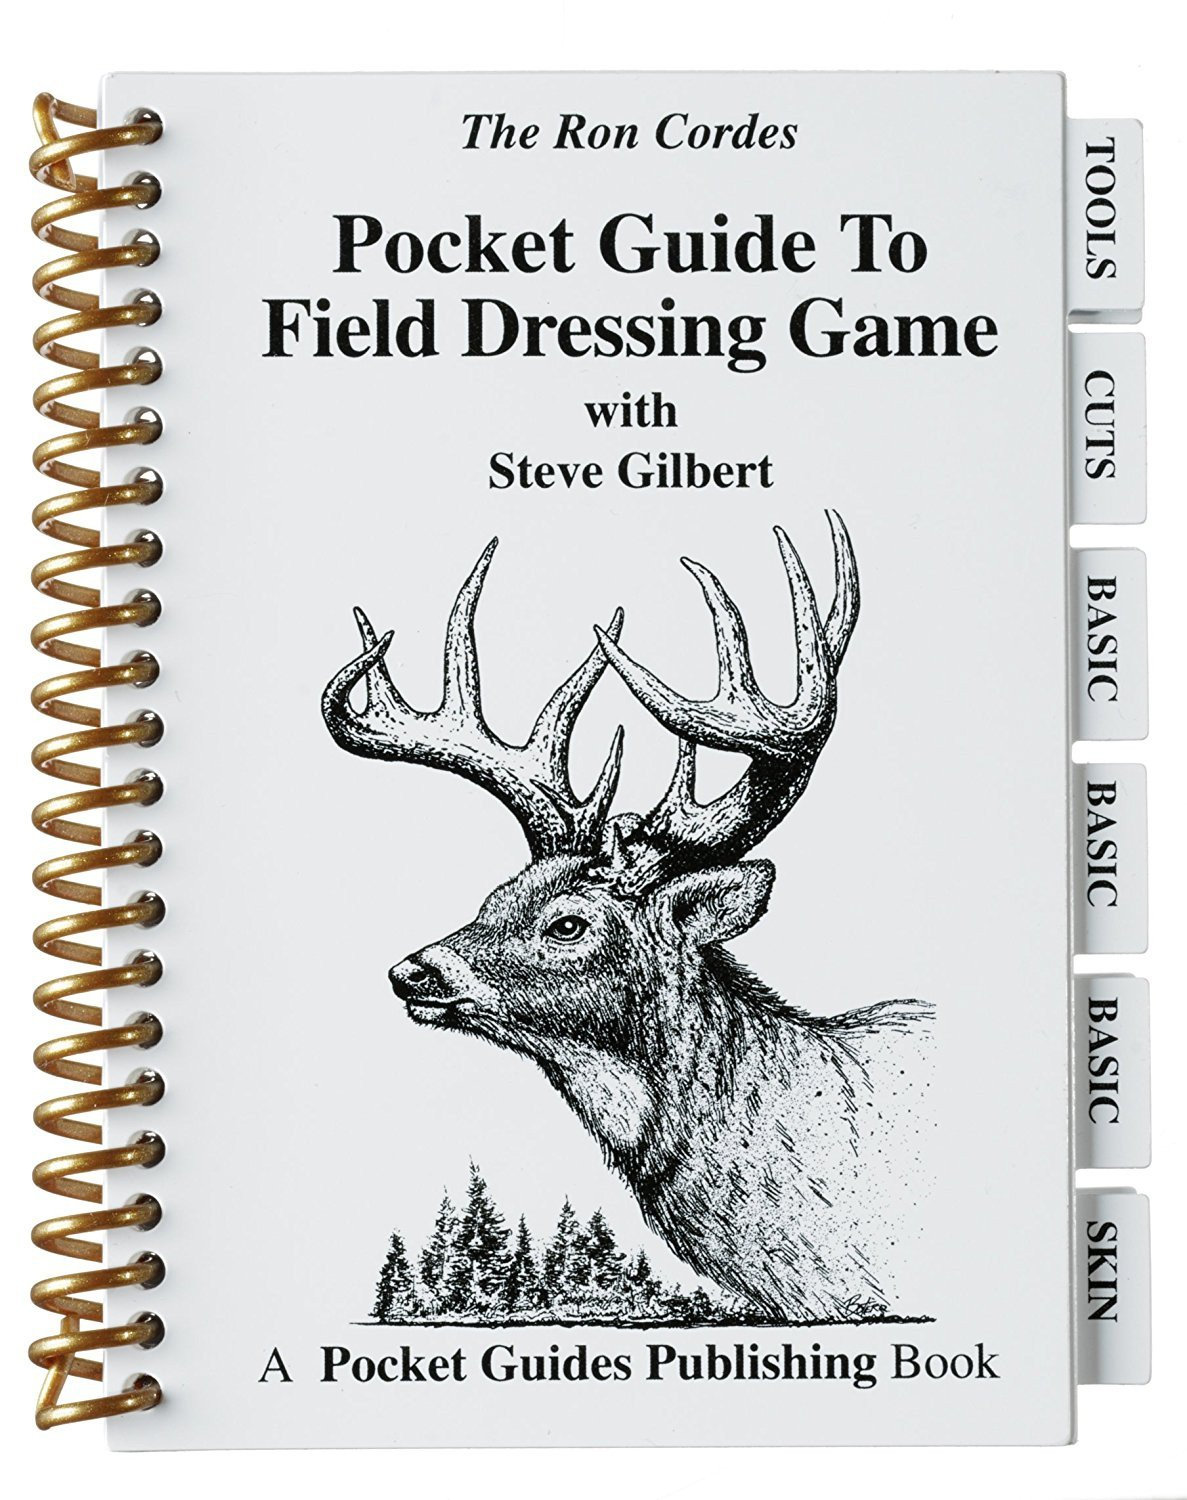 Pocket Guide to Field Dressing Game, by Ron Cordes - Australian Tactical Precision